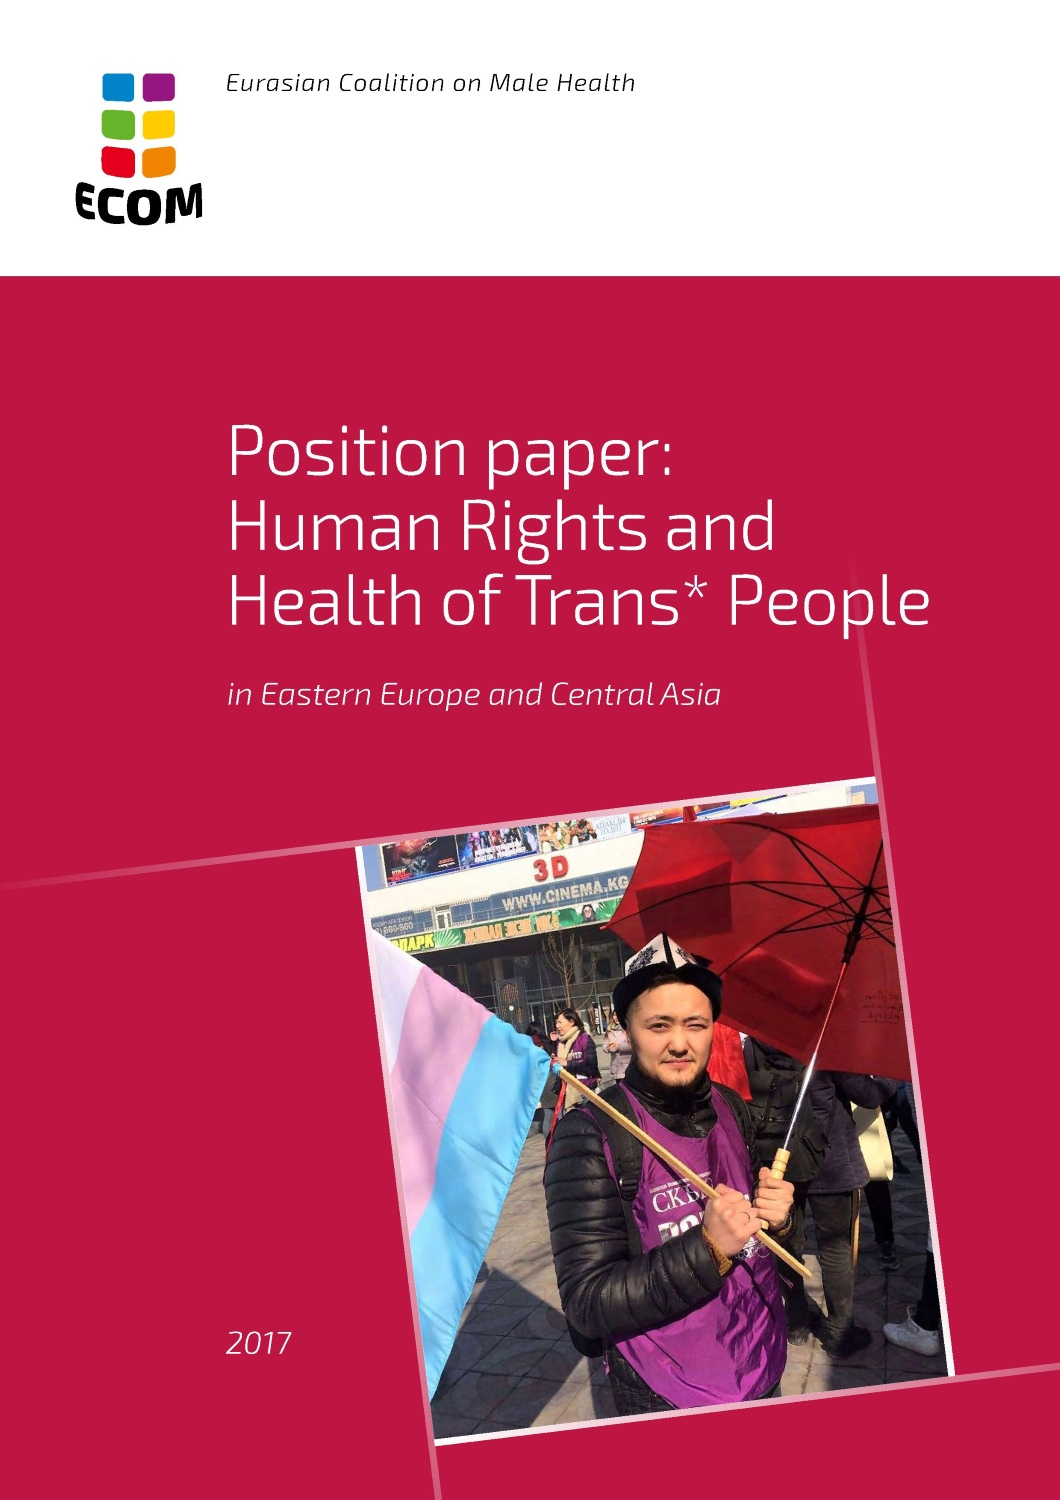 ECOM's position document: Trans* people are part of us, we fight together for human rights and health